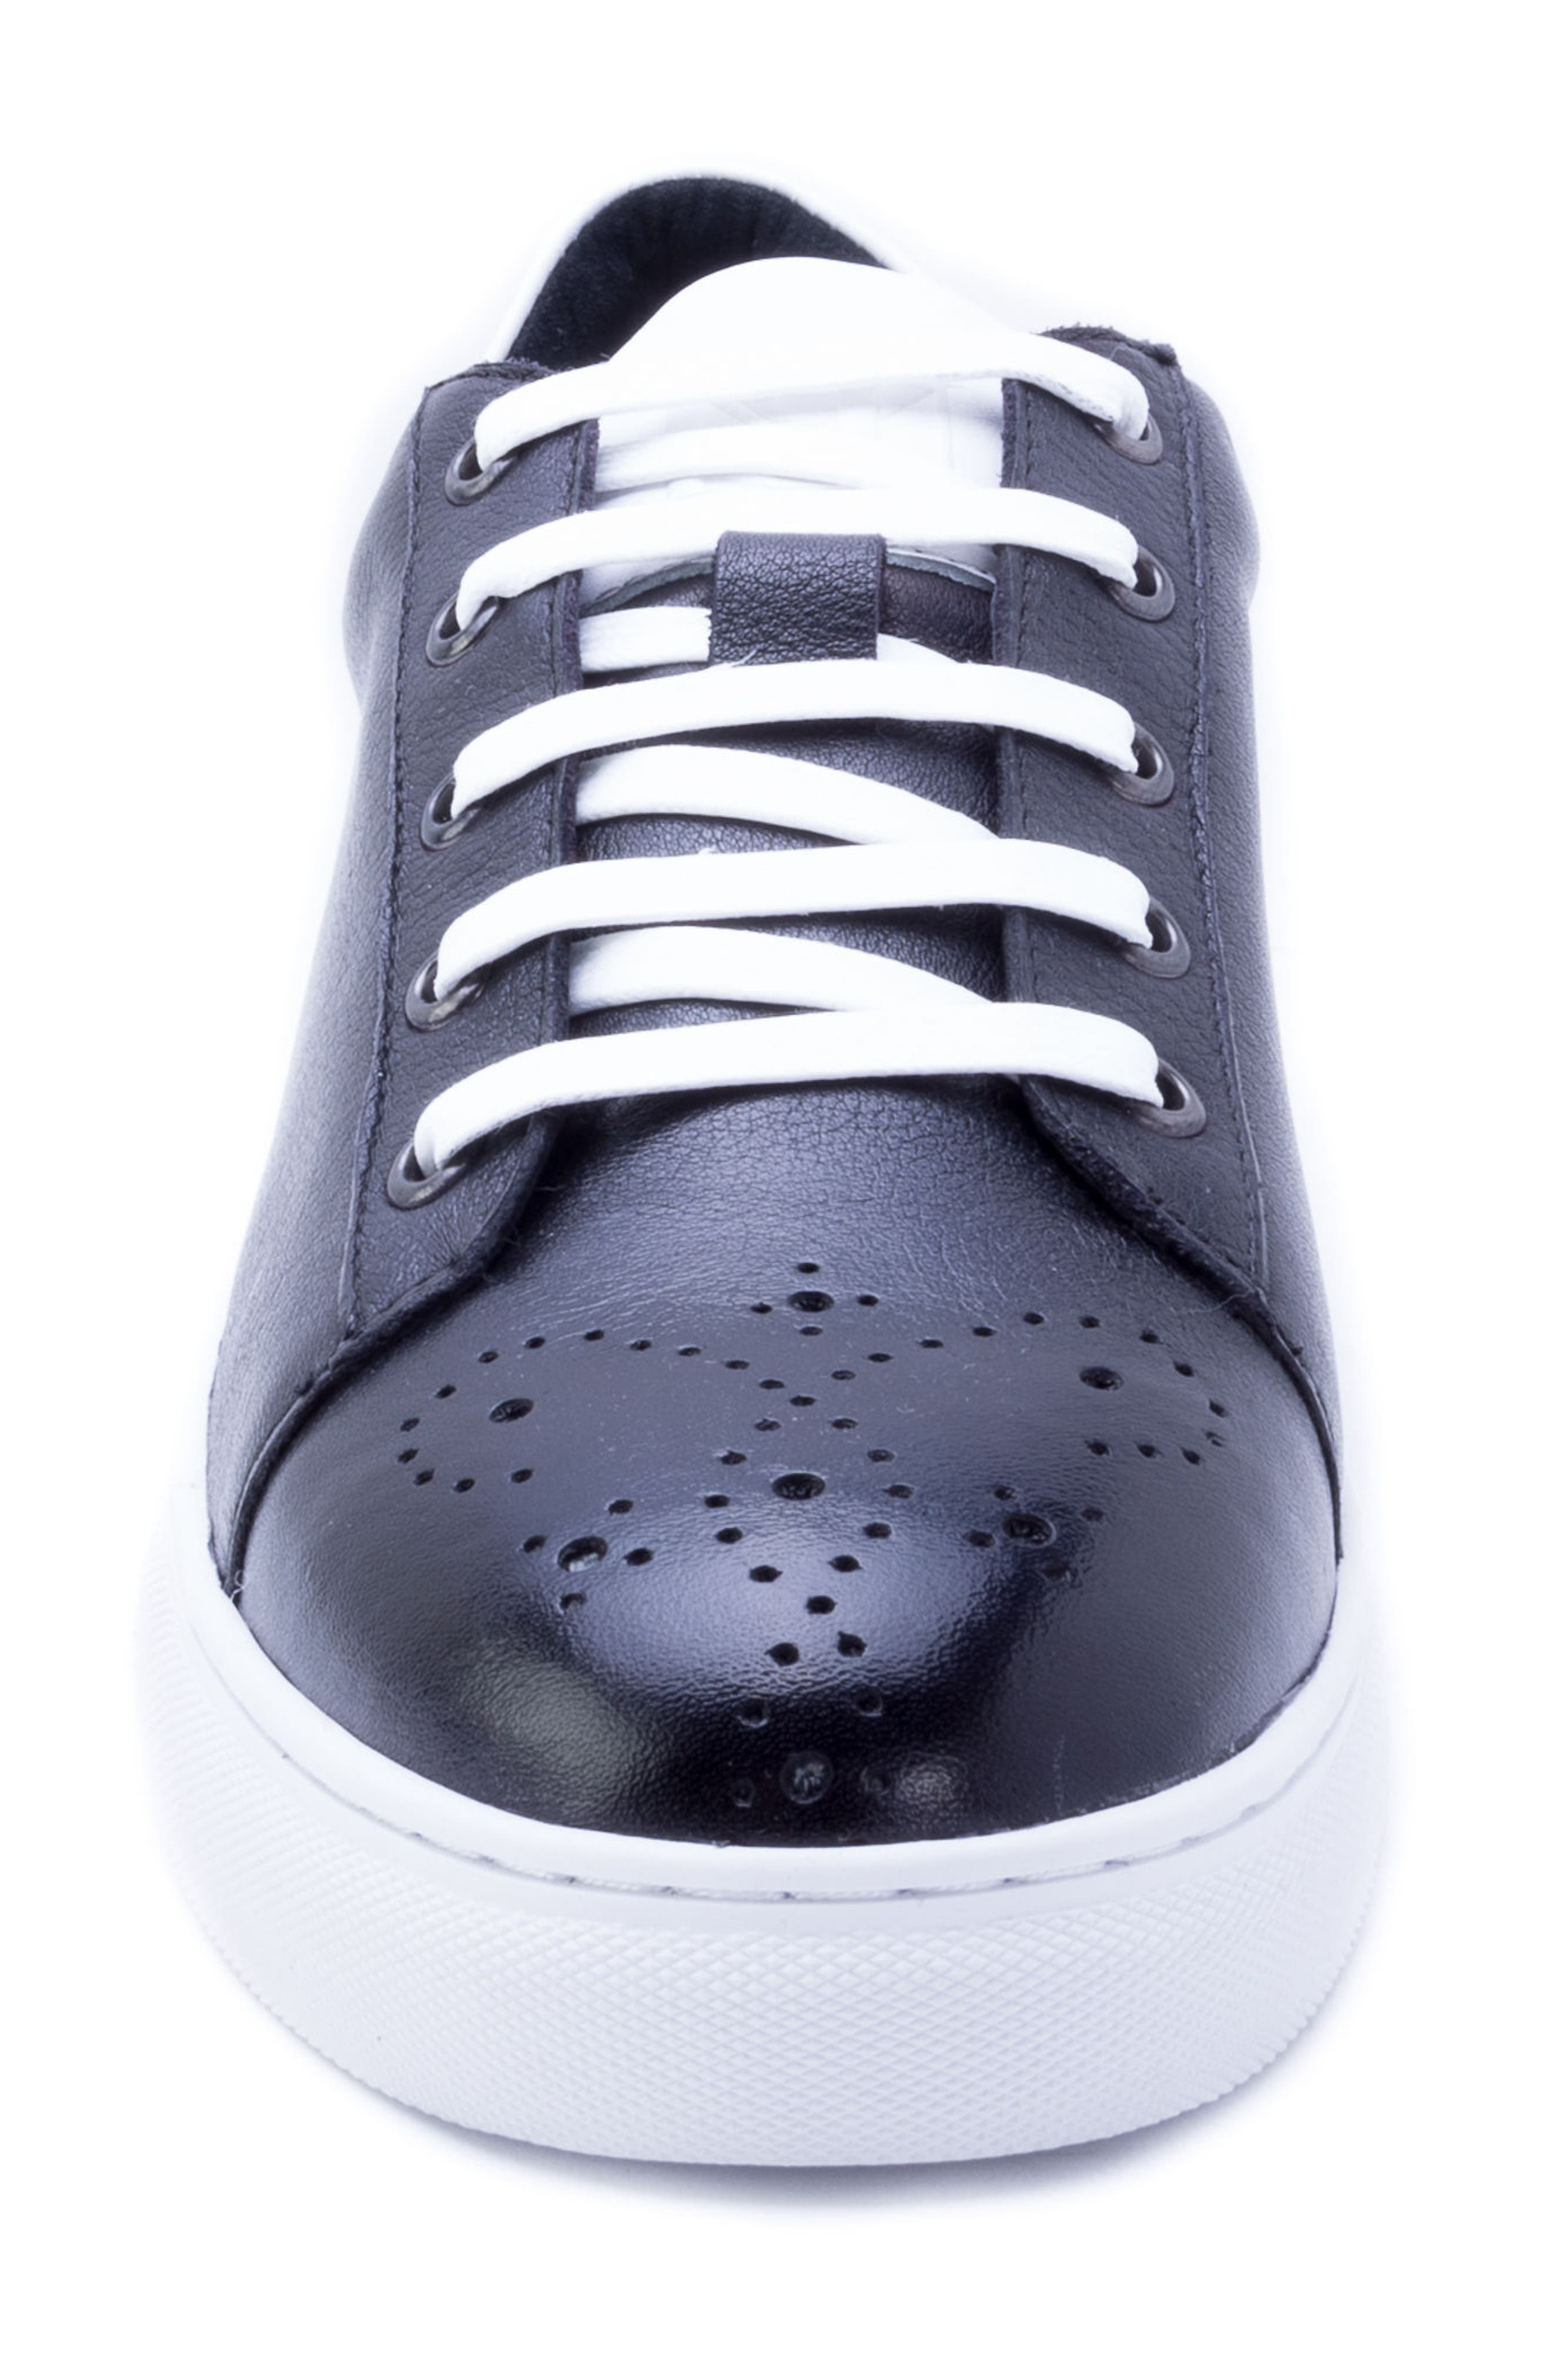 Sinatra Sneaker,                             Alternate thumbnail 4, color,                             BLACK LEATHER